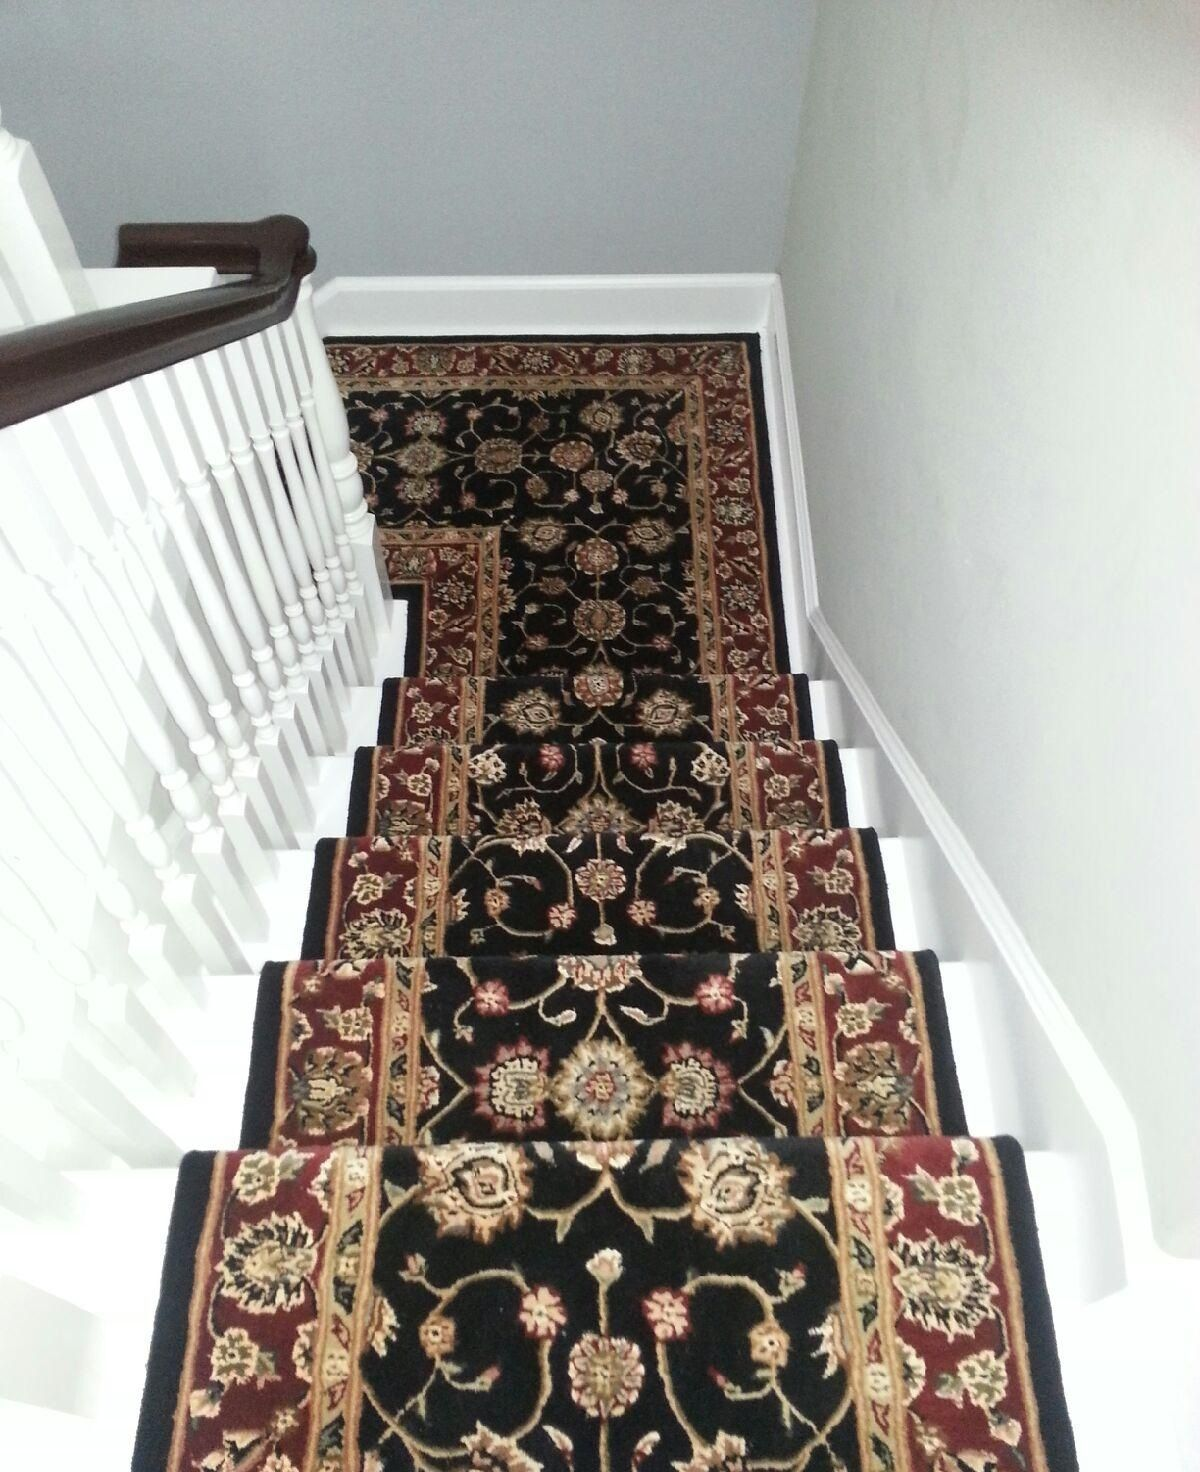 S T S Carpets And Flooring